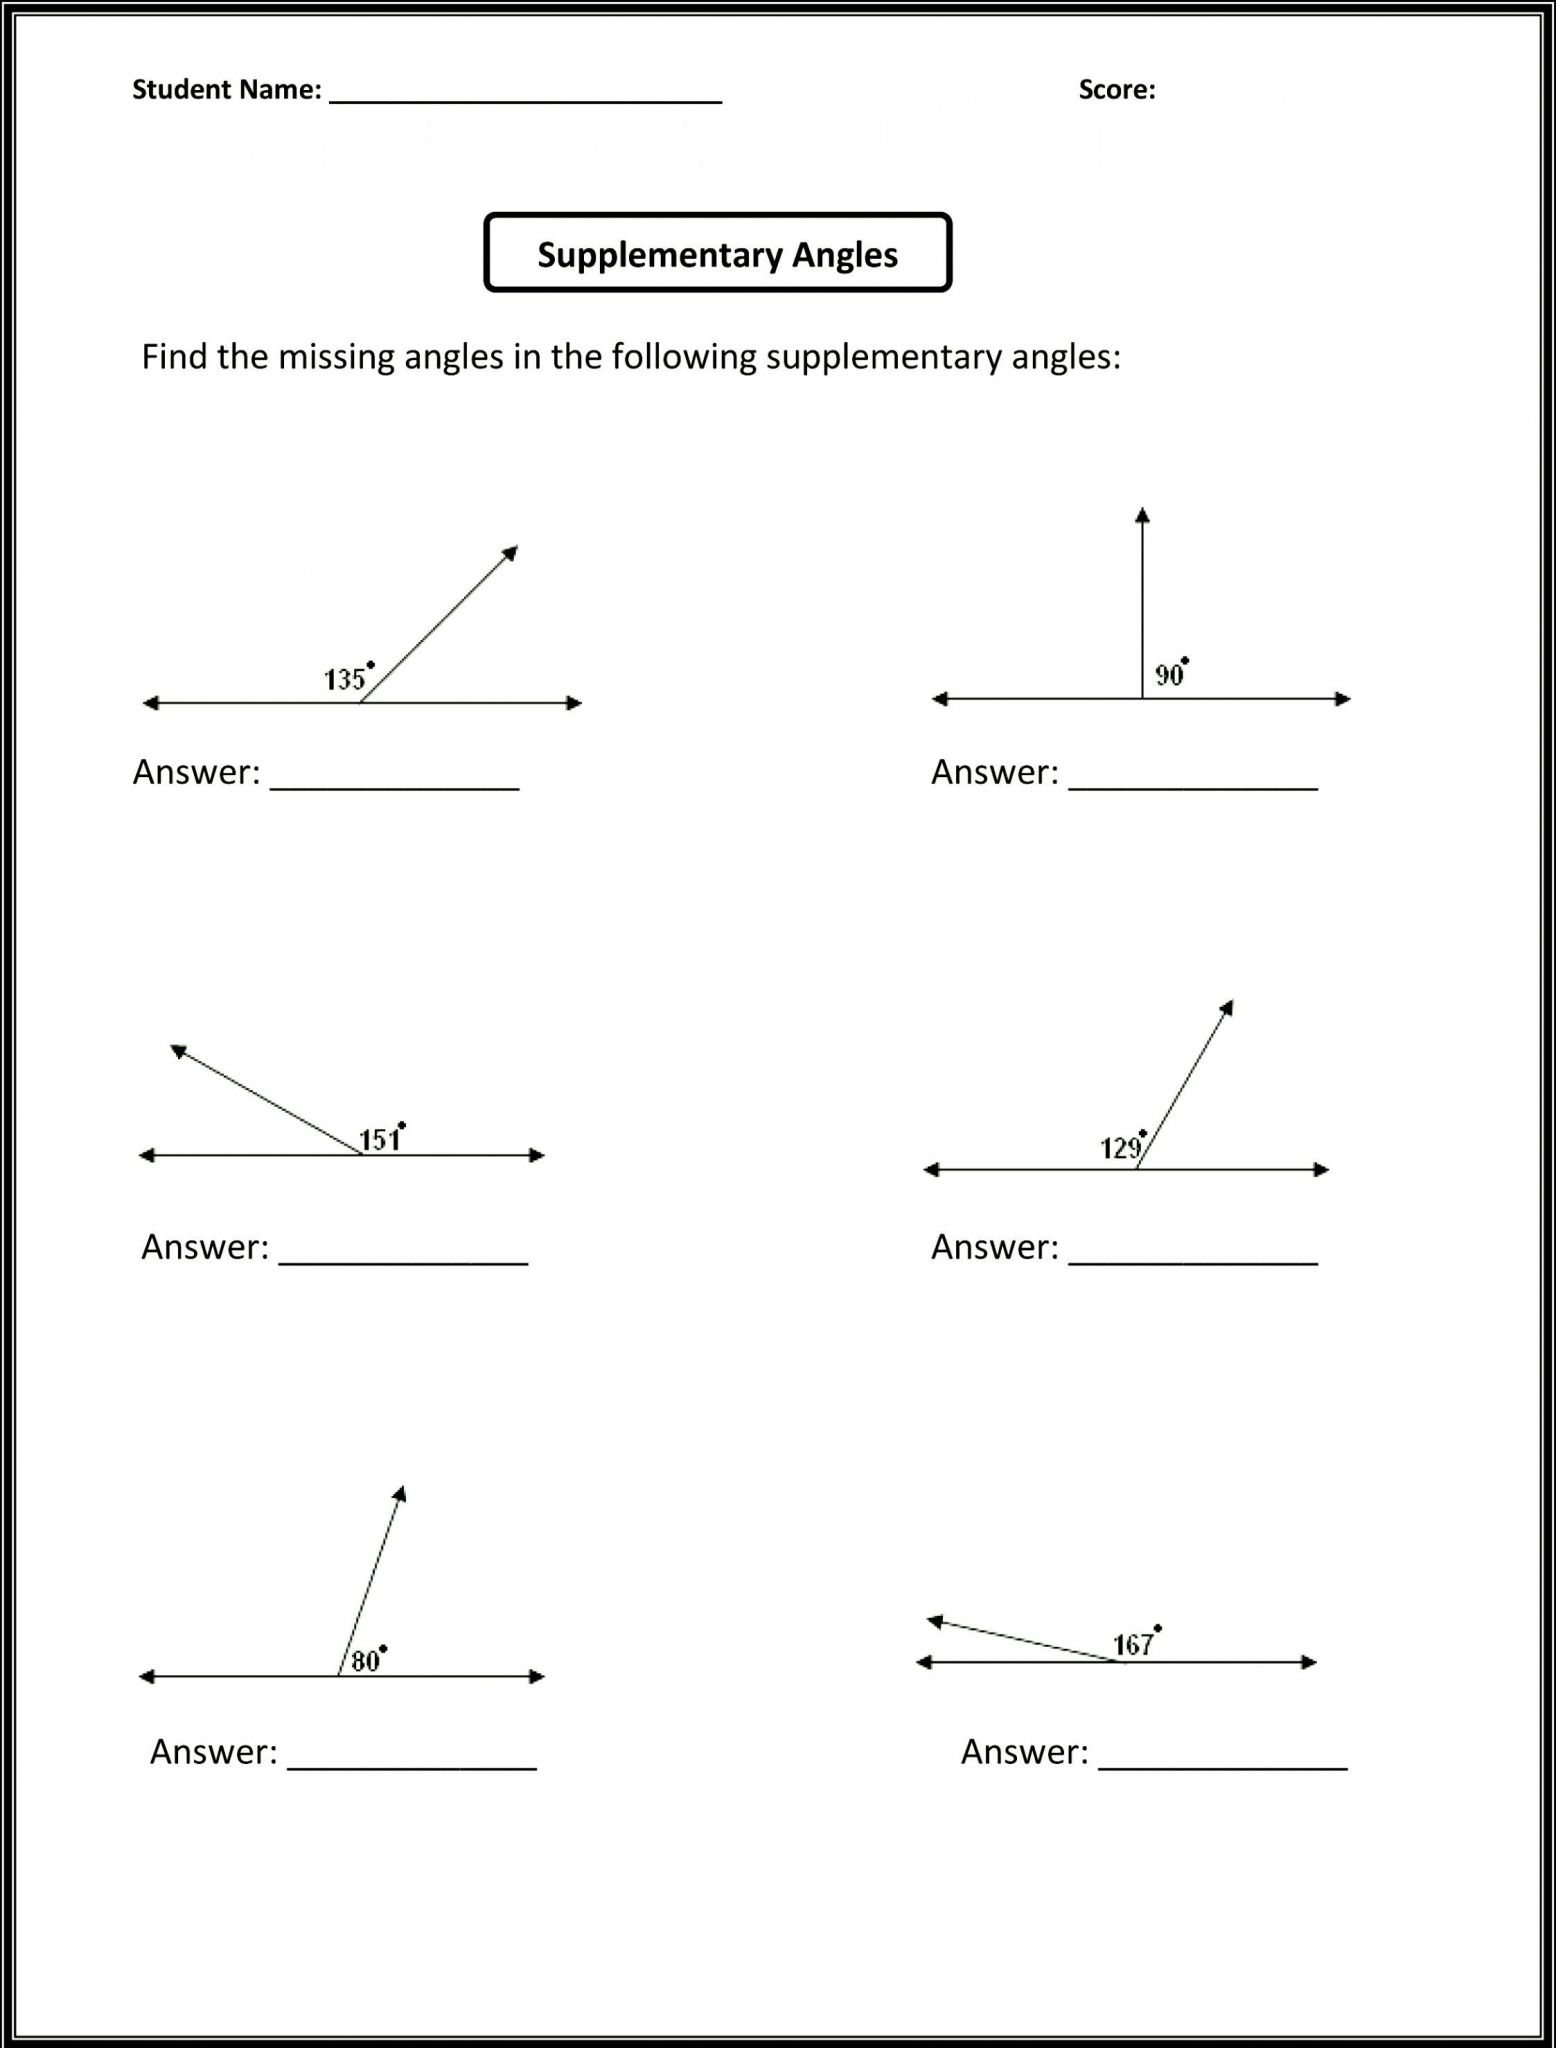 Angle Pair Relationships Worksheet Answers